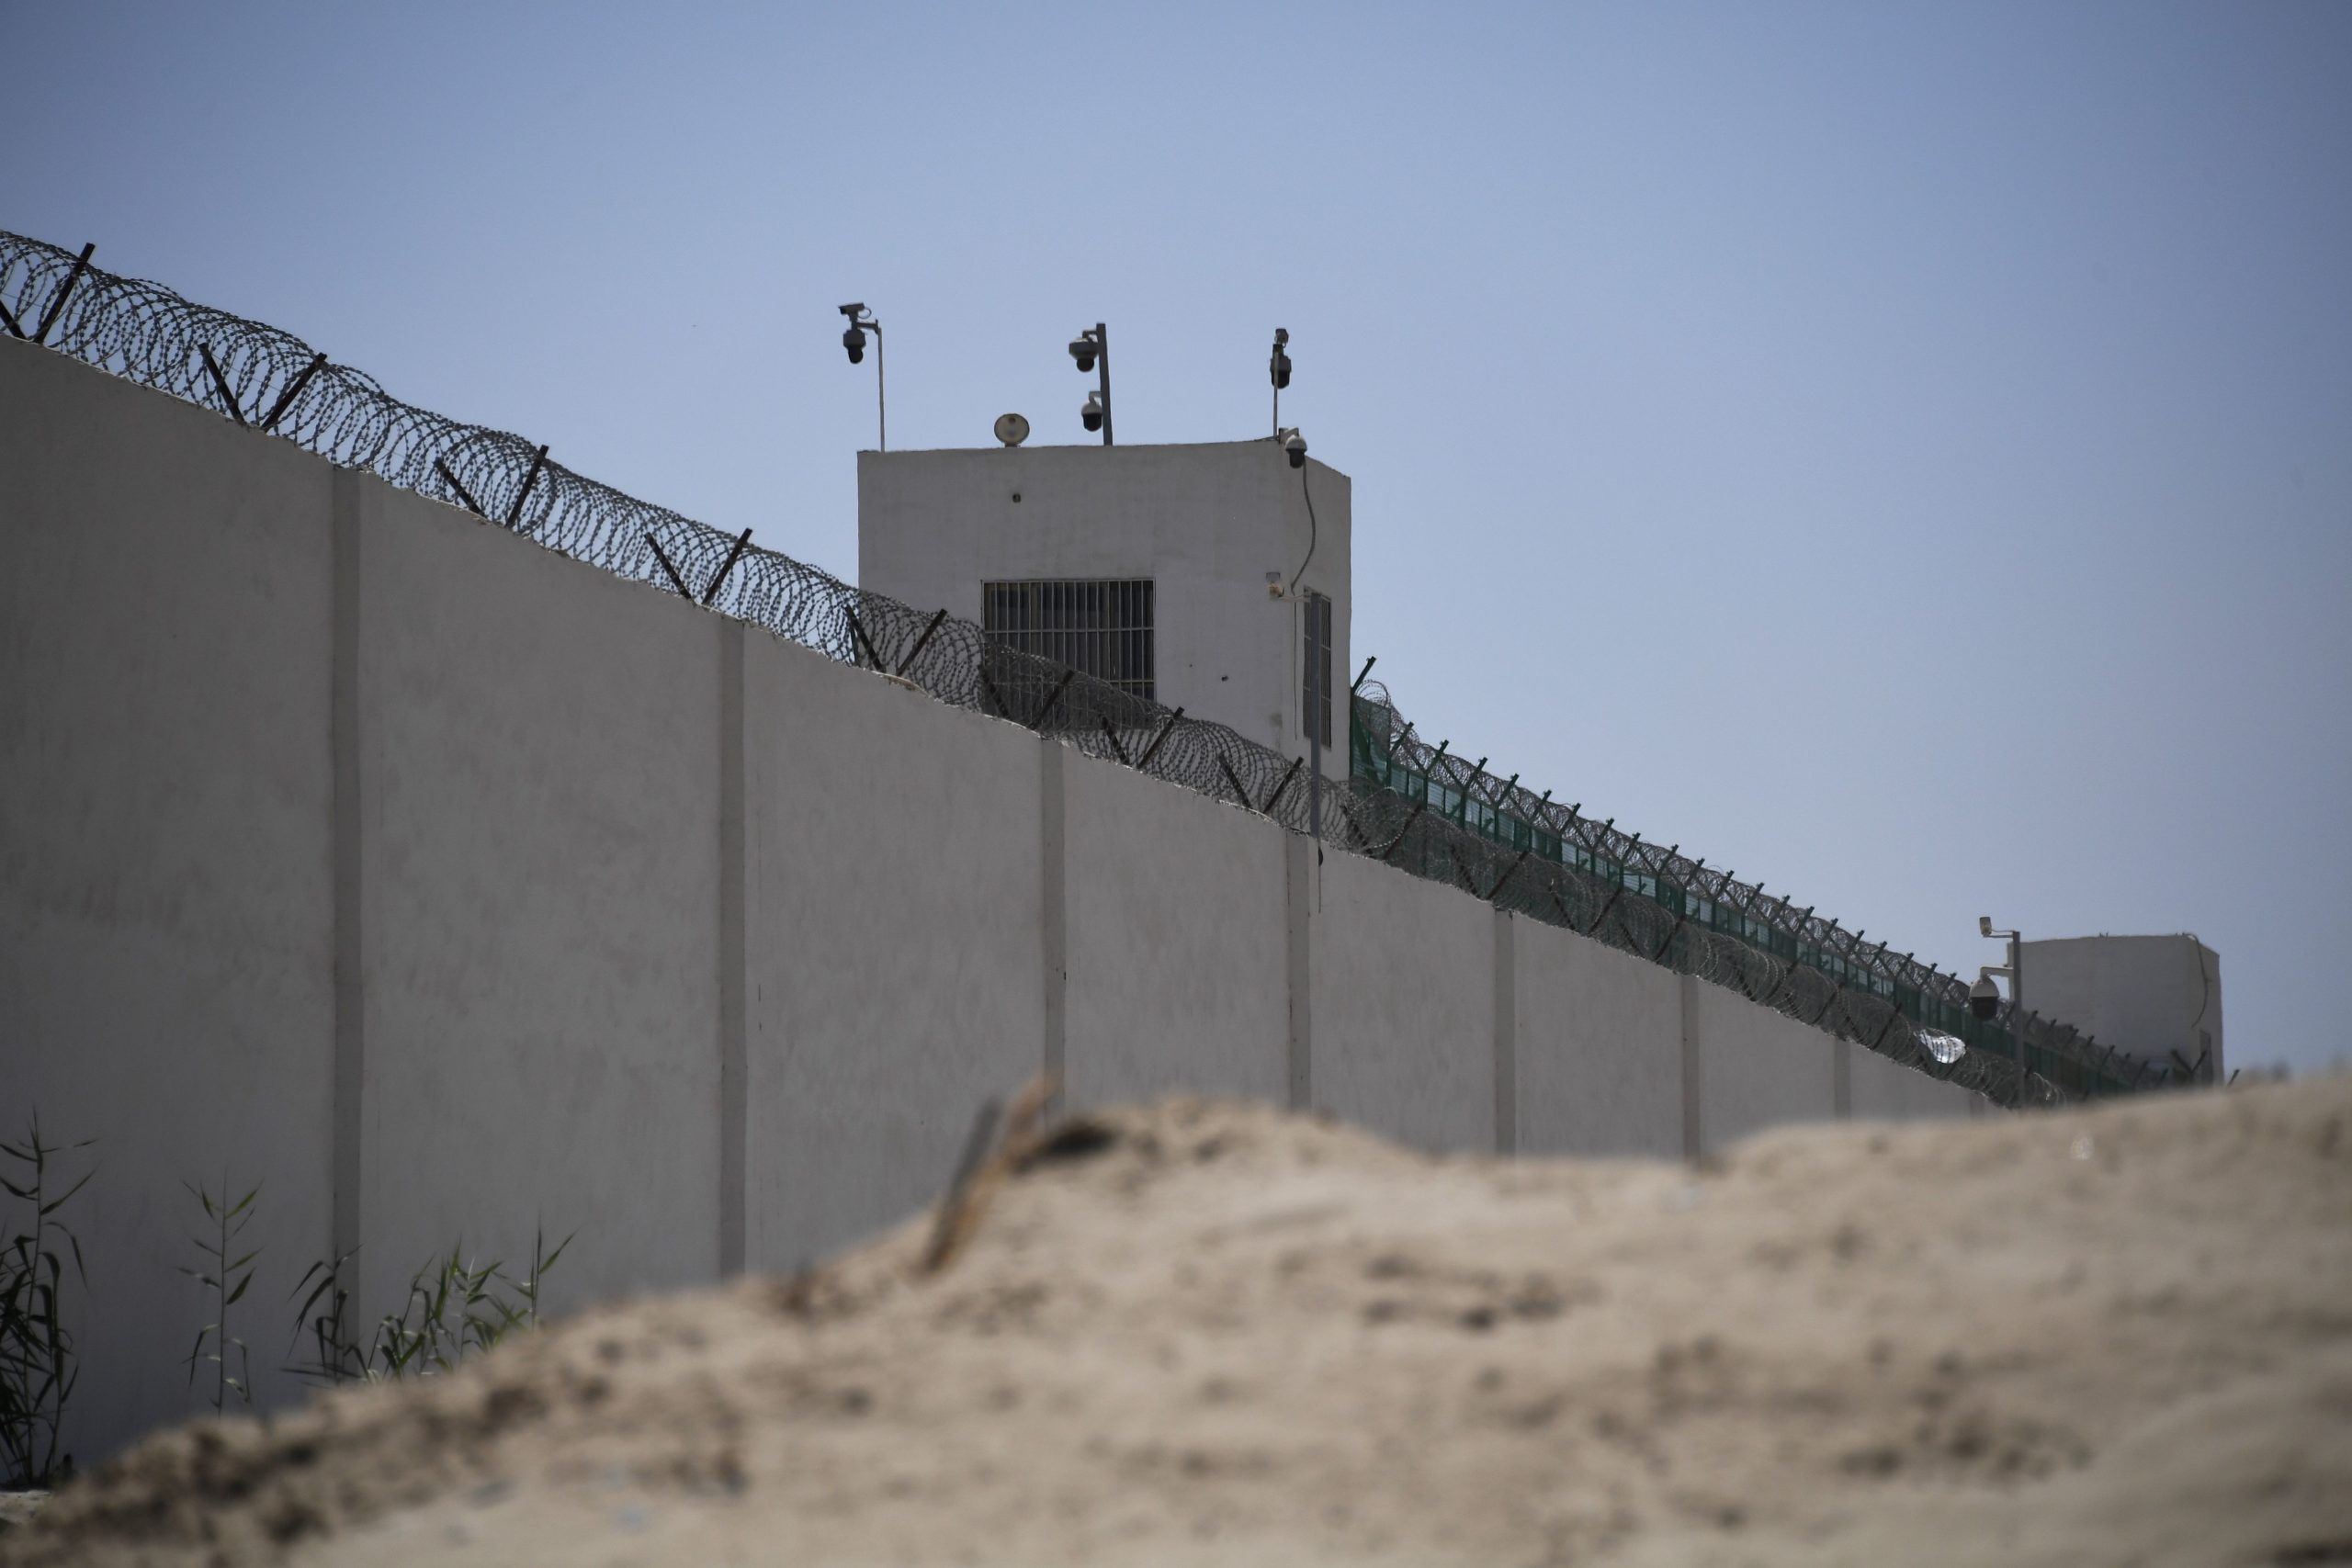 "This photo taken on May 31, 2019 shows the outer wall of a complex which includes what is believed to be a re-education camp where mostly Muslim ethnic minorities are detained, on the outskirts of Hotan, in China's northwestern Xinjiang region. - As many as one million ethnic Uighurs and other mostly Muslim minorities are believed to be held in a network of internment camps in Xinjiang, but China has not given any figures and describes the facilities as ""vocational education centres"" aimed at steering people away from extremism. (Photo by Greg Baker/AFP via Getty Images)"